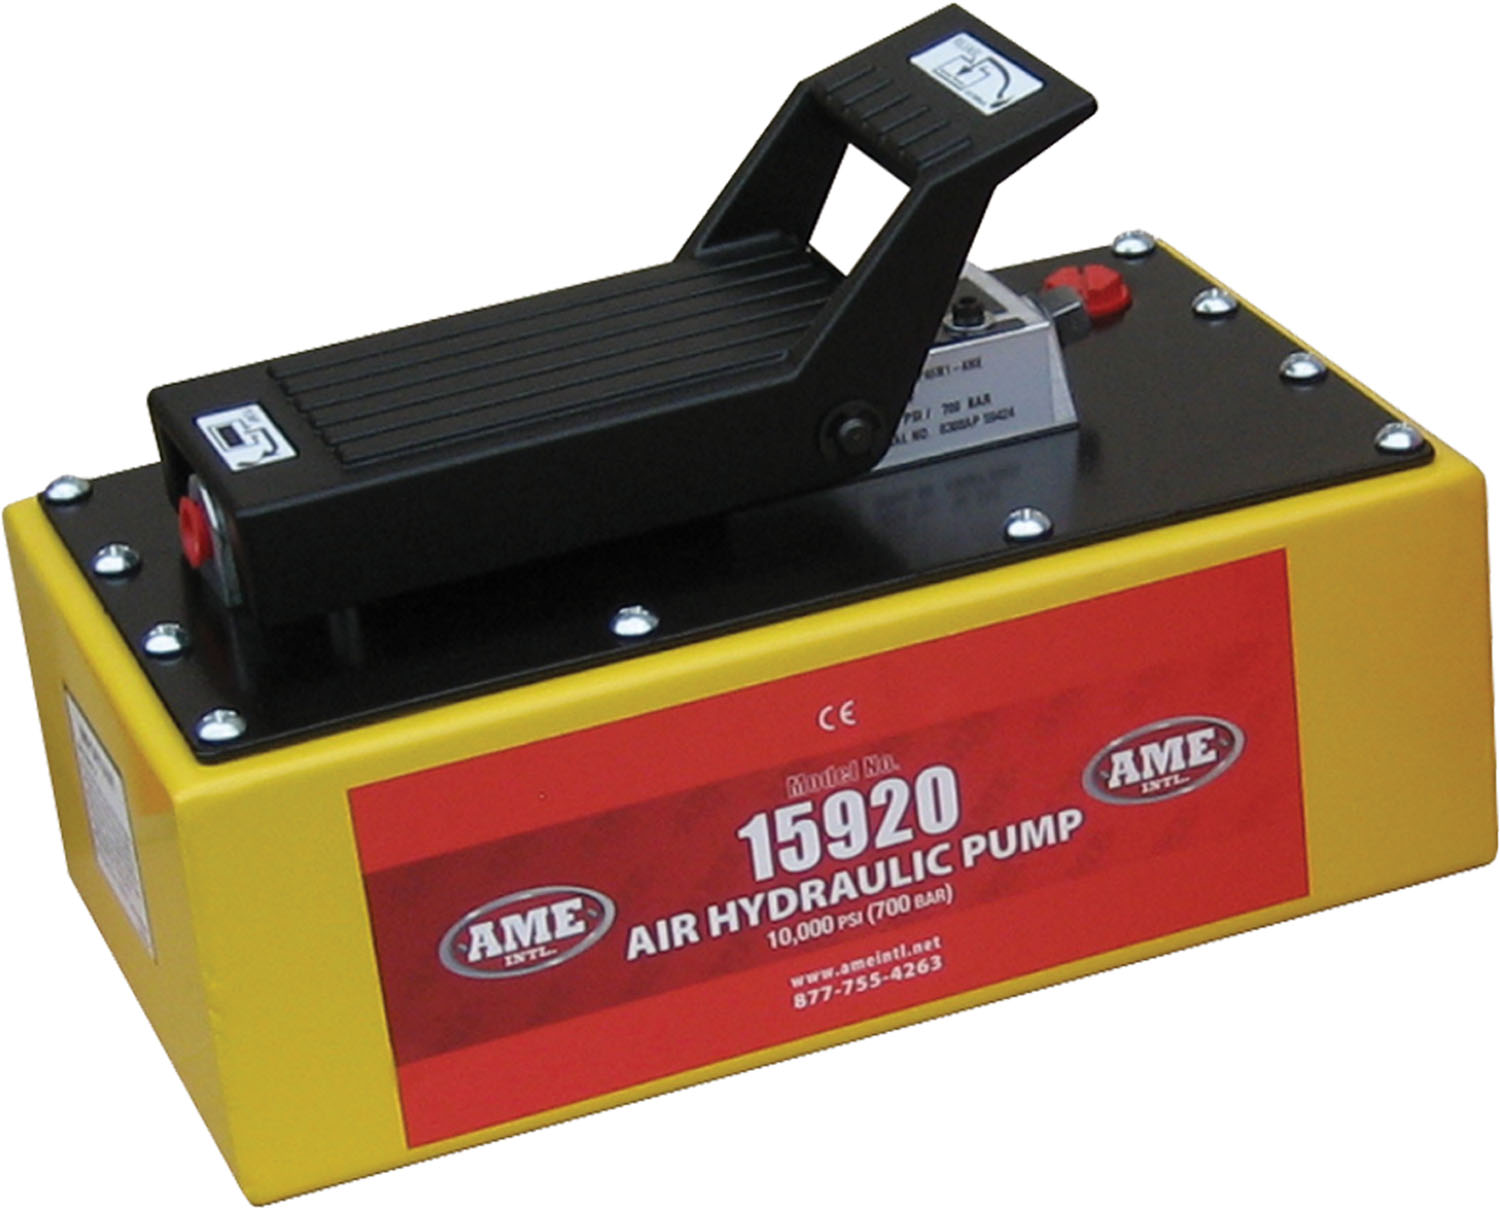 AME International Air Hydraulic Pump